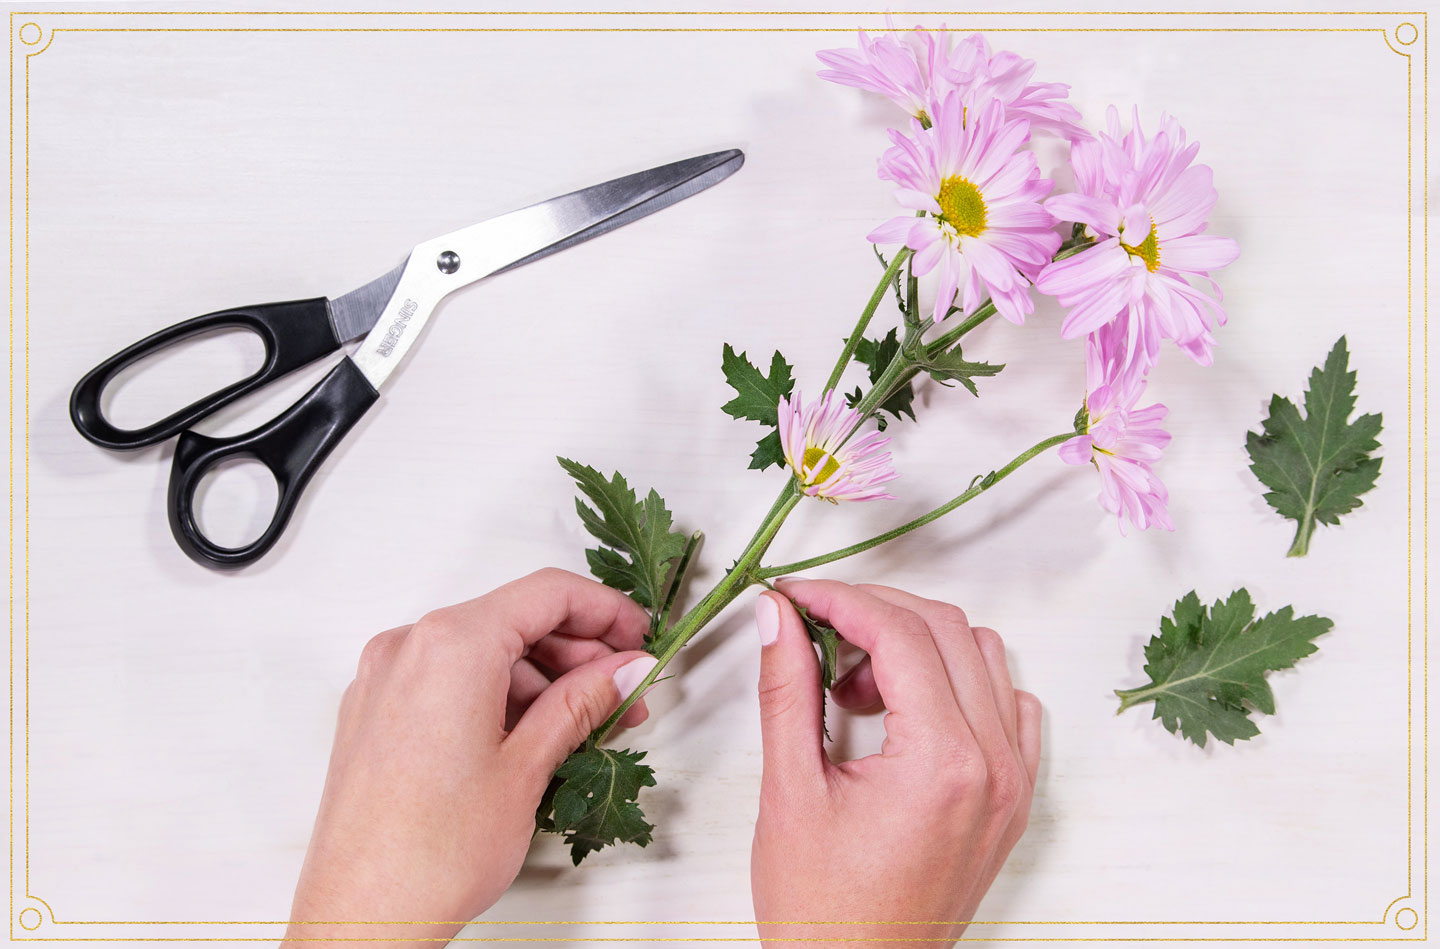 pulling off stems of a flower